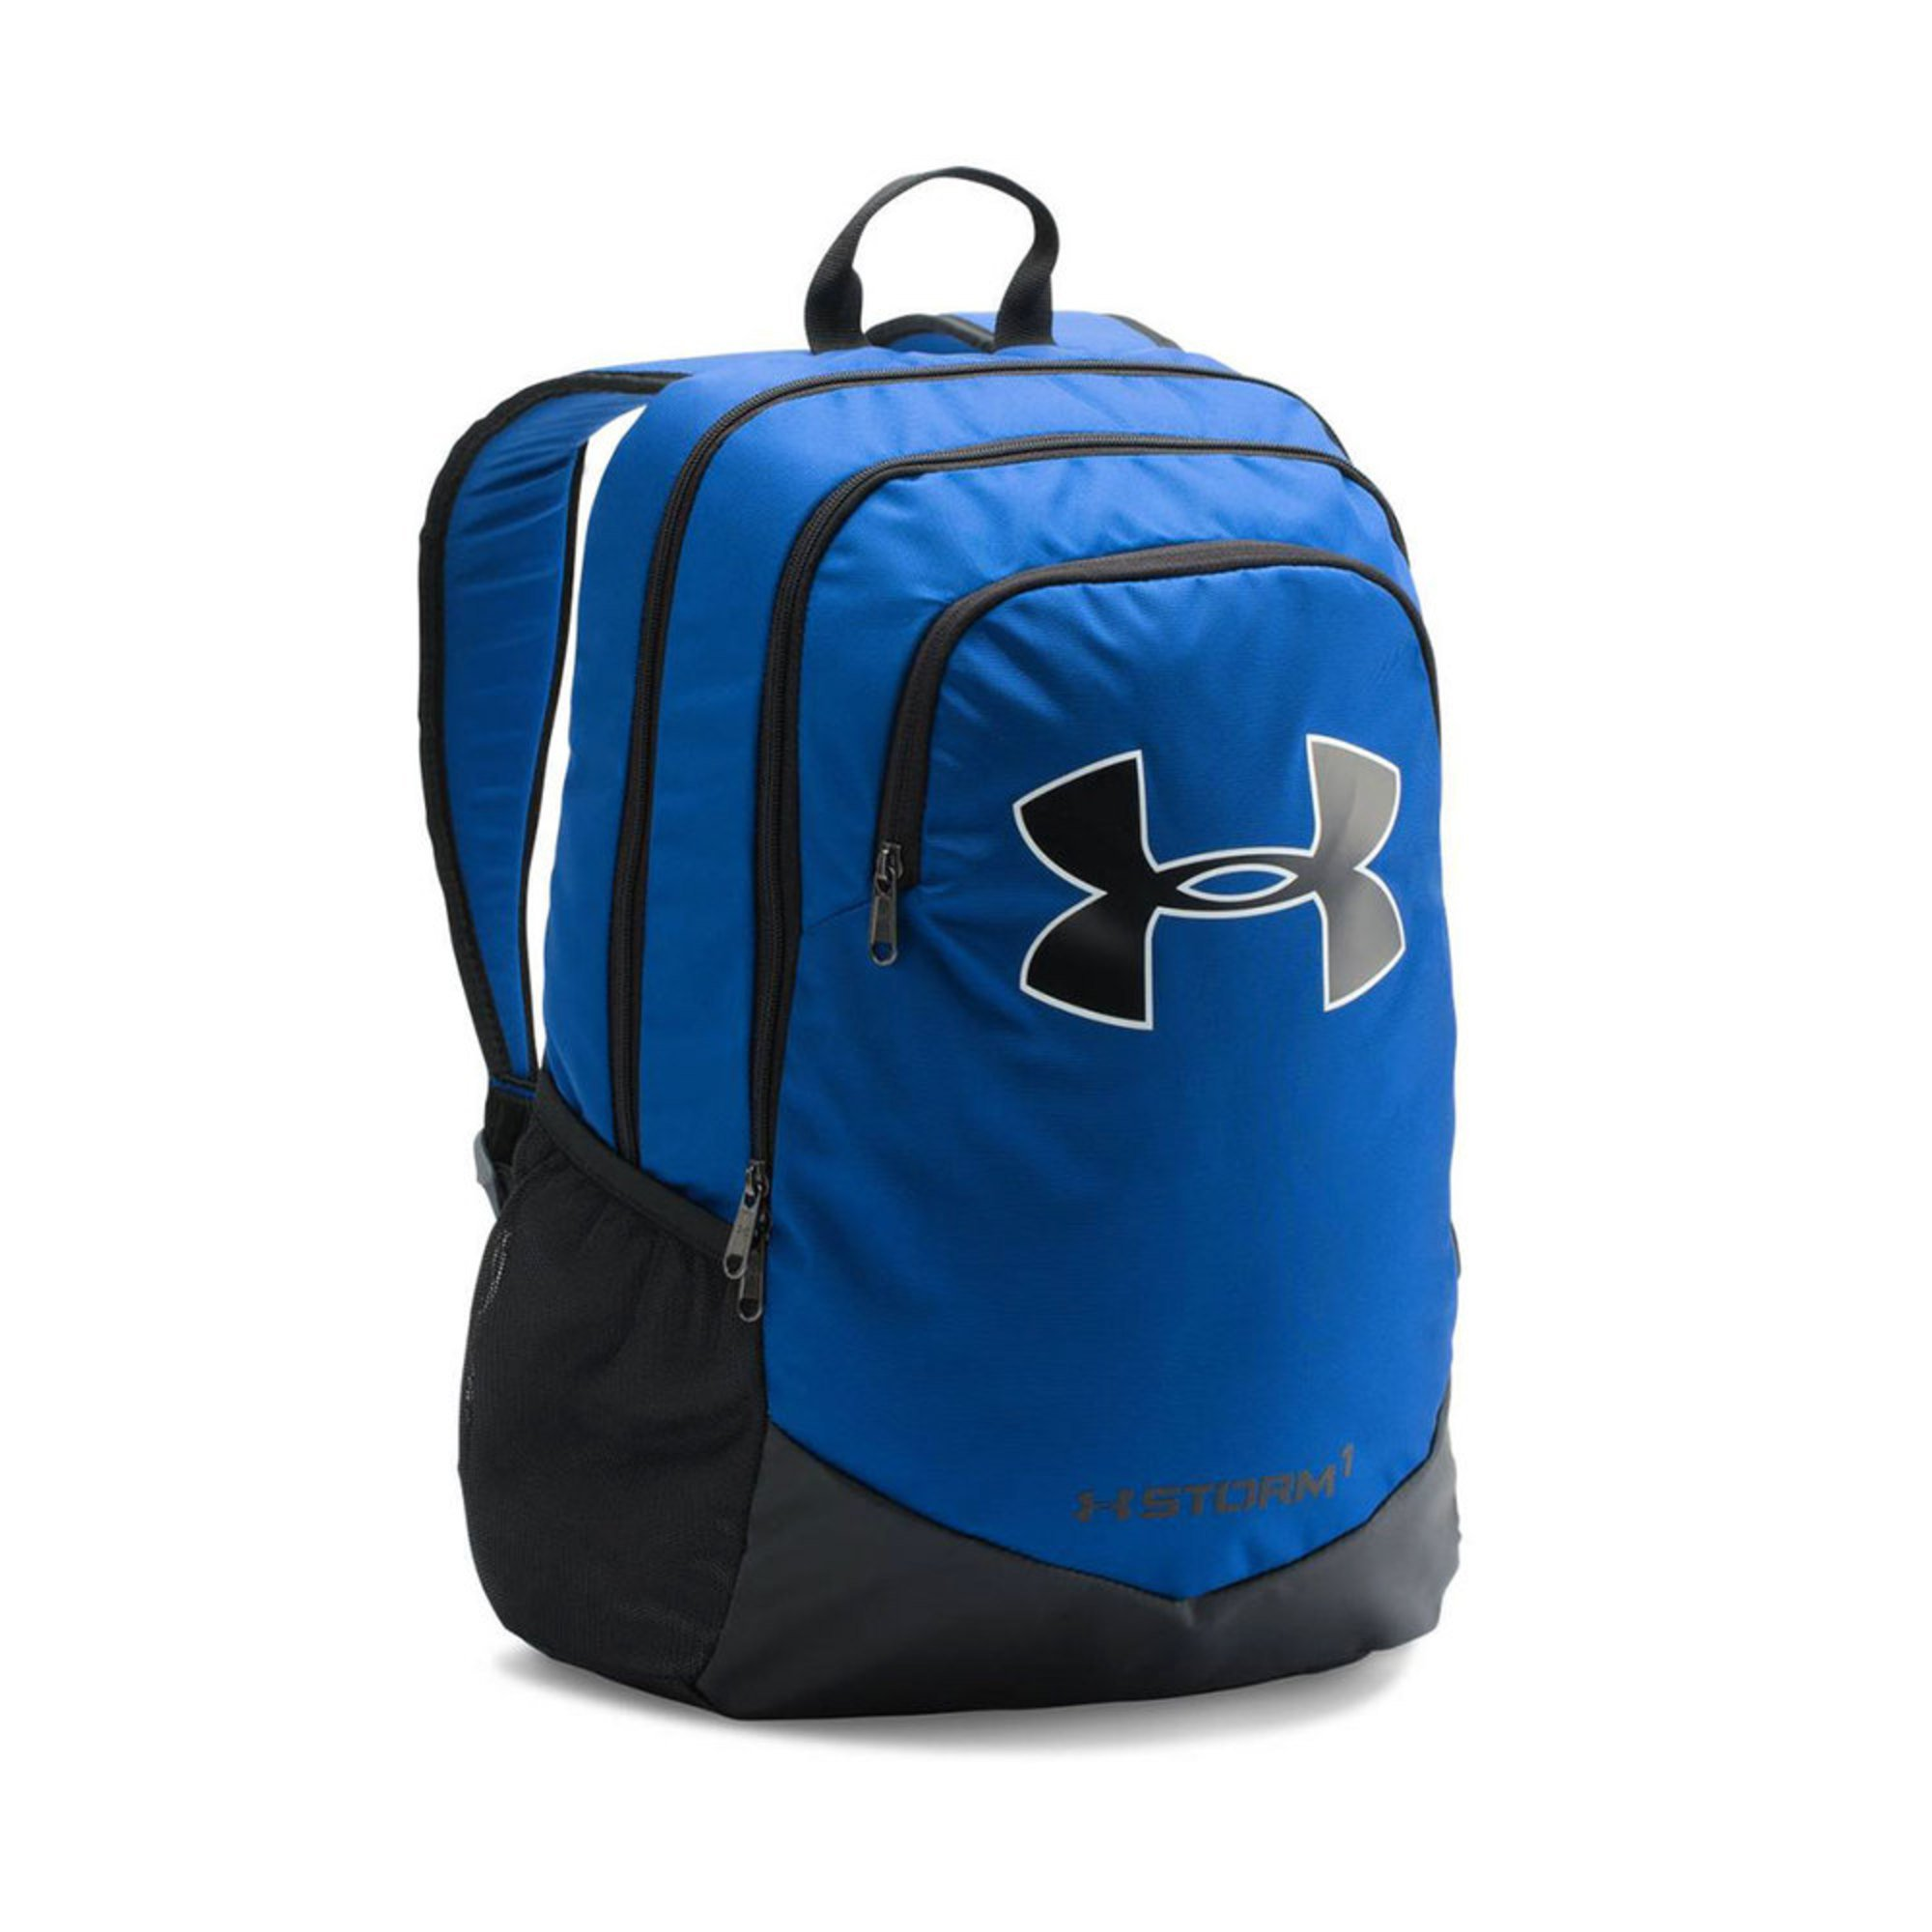 2e405456f8e1 Under Armour. Under Armour Hustle 3.0 Backpack - Royal